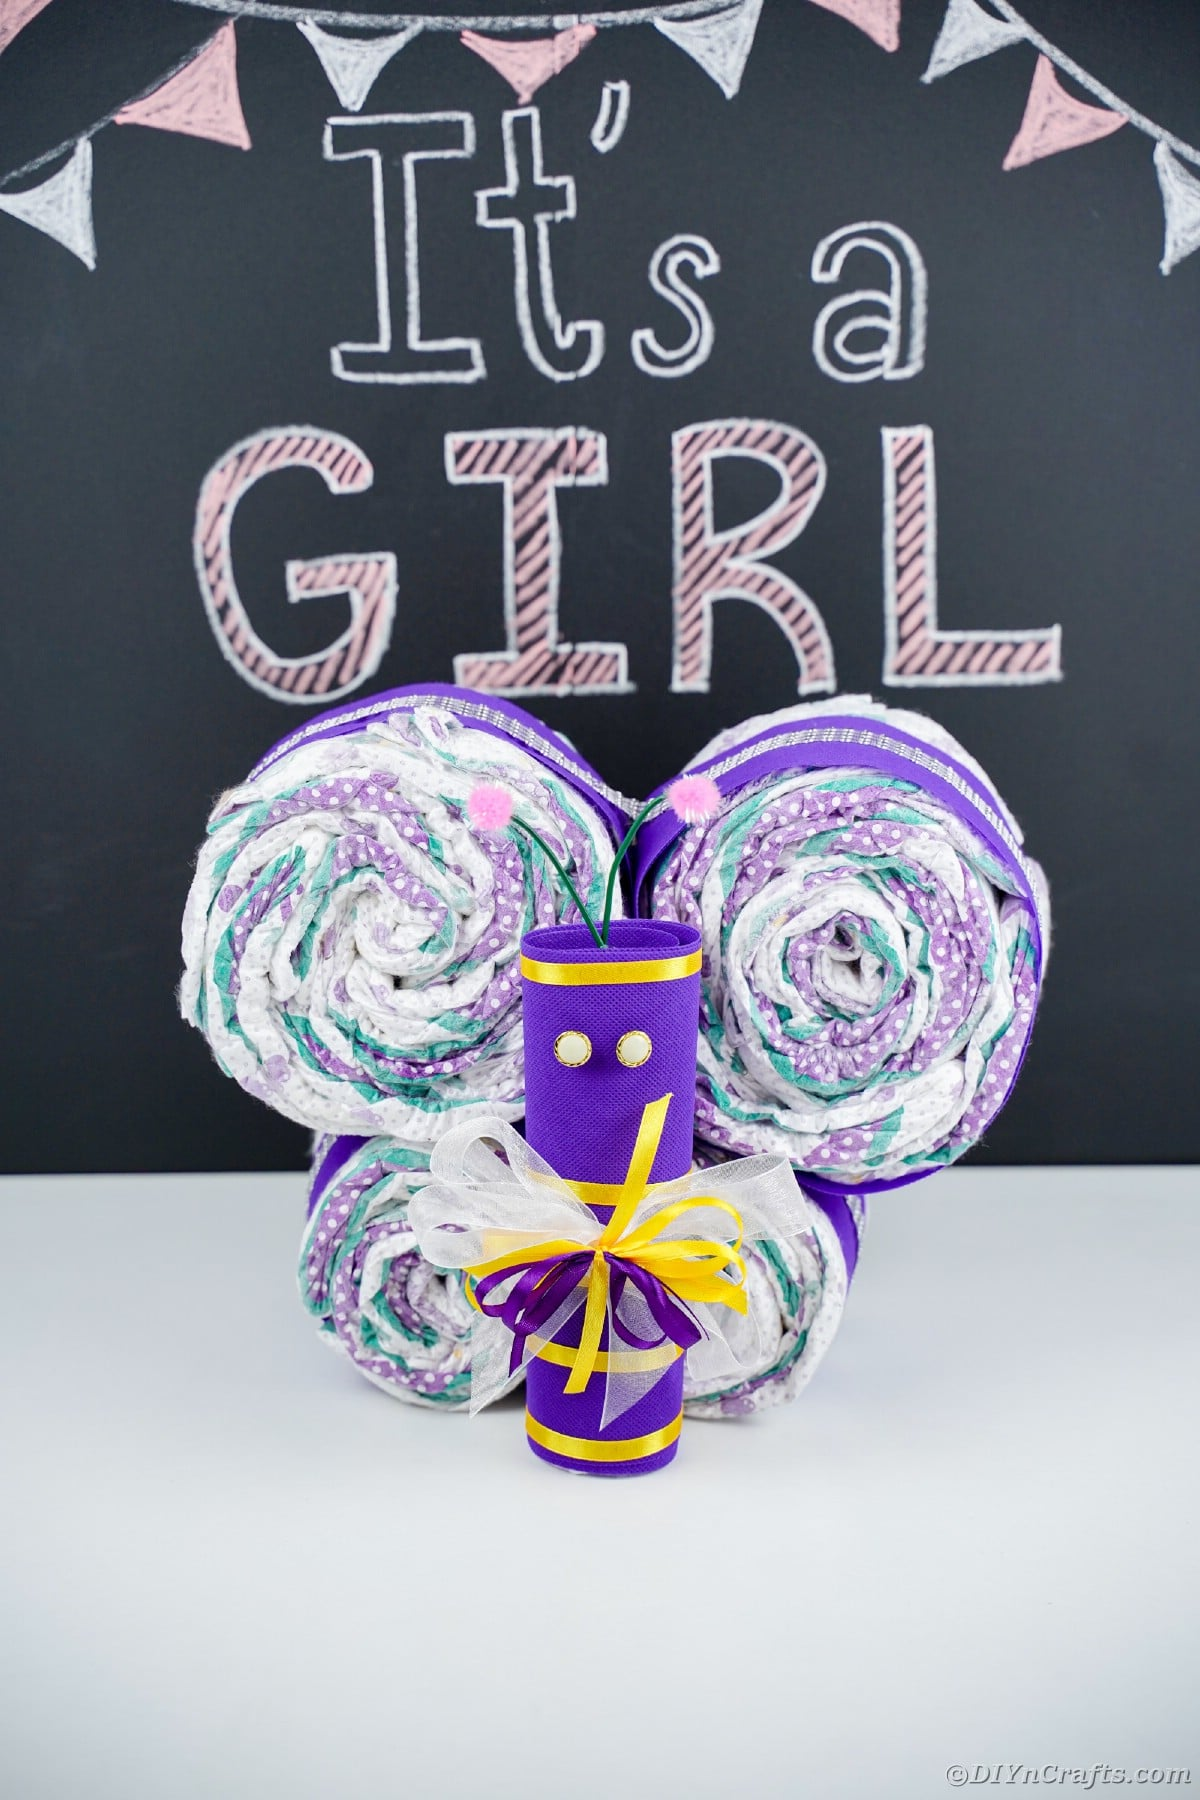 Purple butterfly made of diapers in front of its a girl chalkboard message